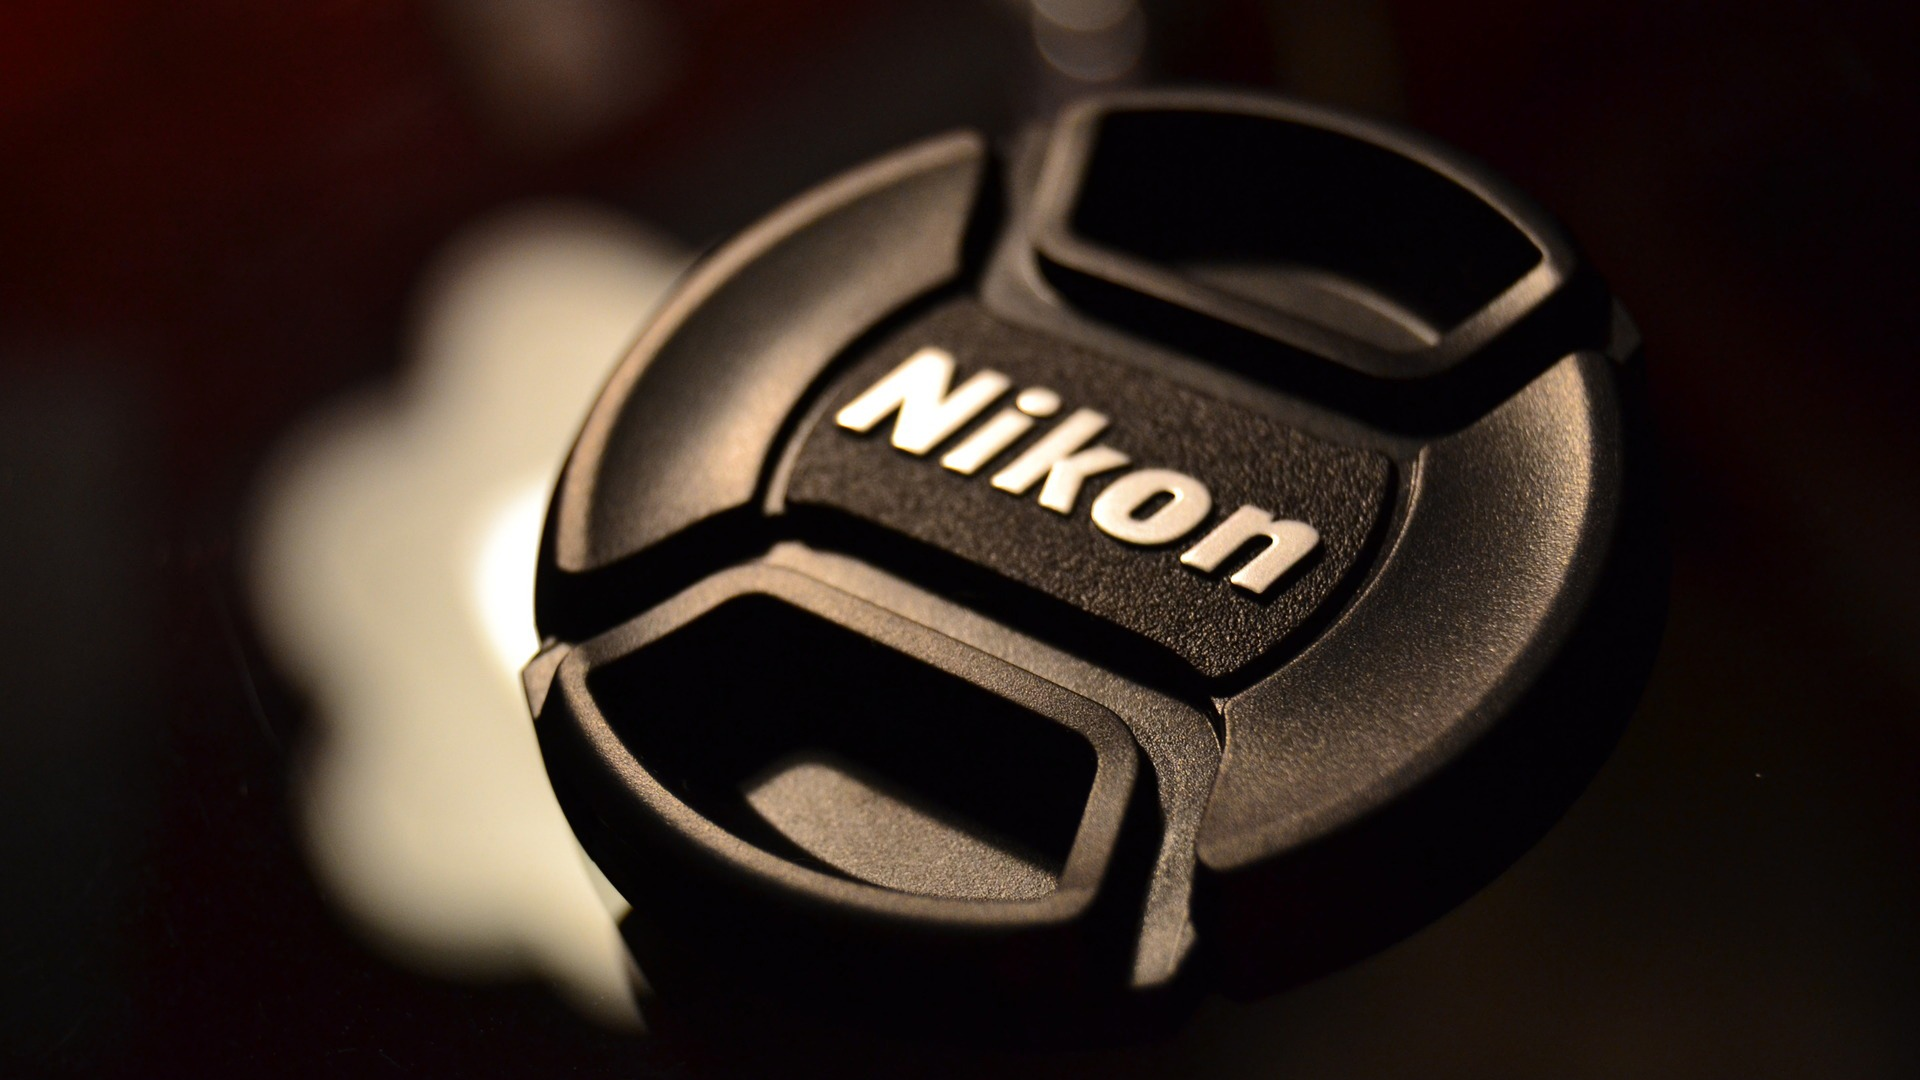 Nikon Cap Logo Wallpaper 44827